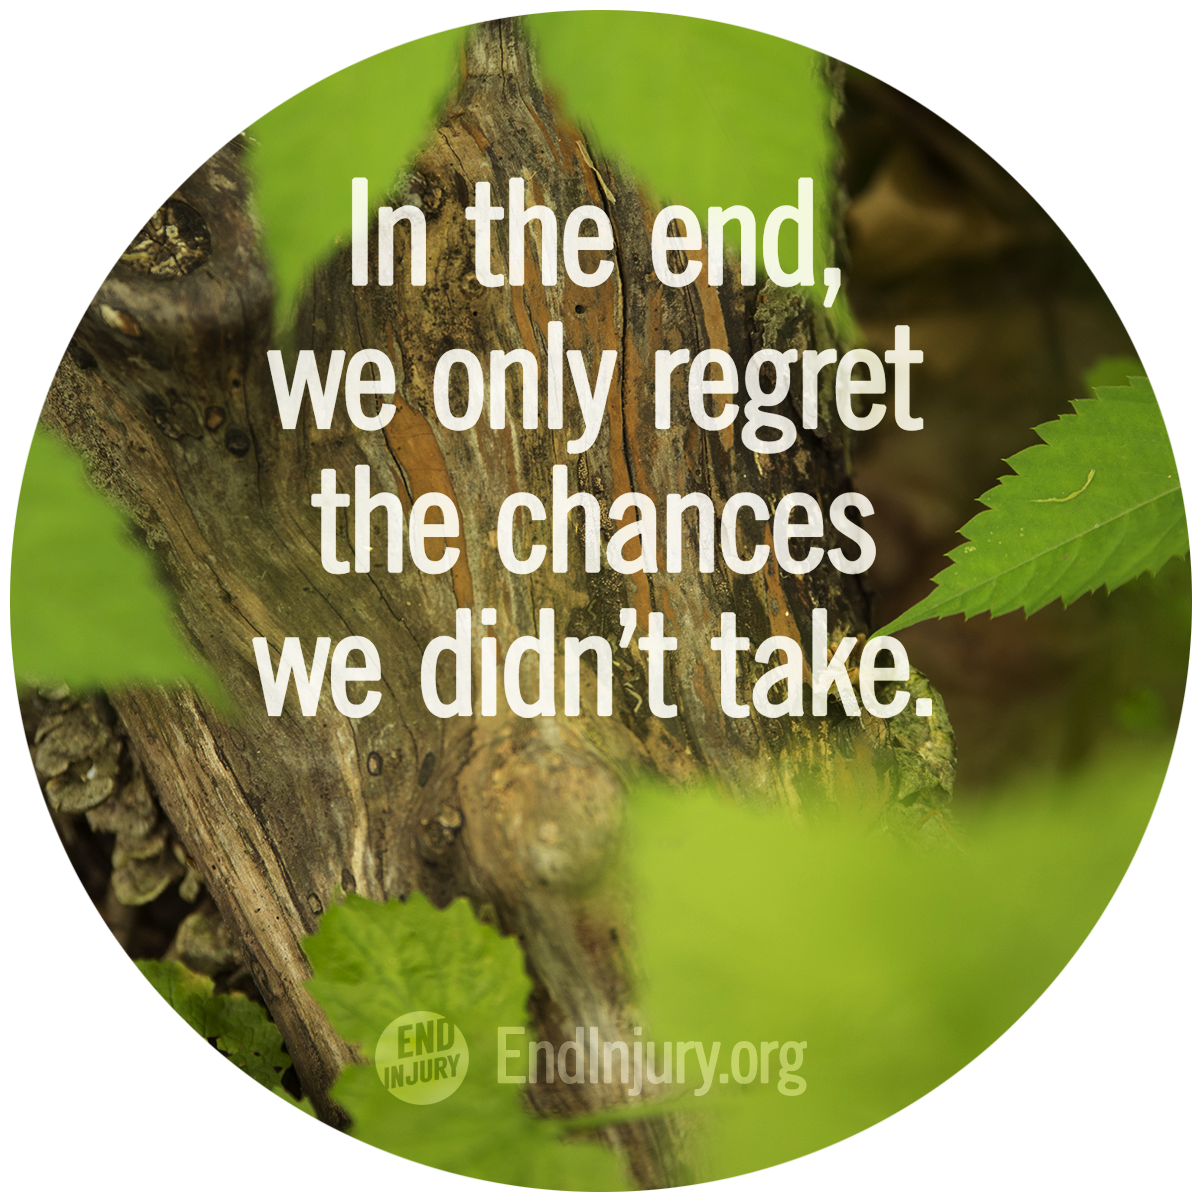 regret-chances-quote.png